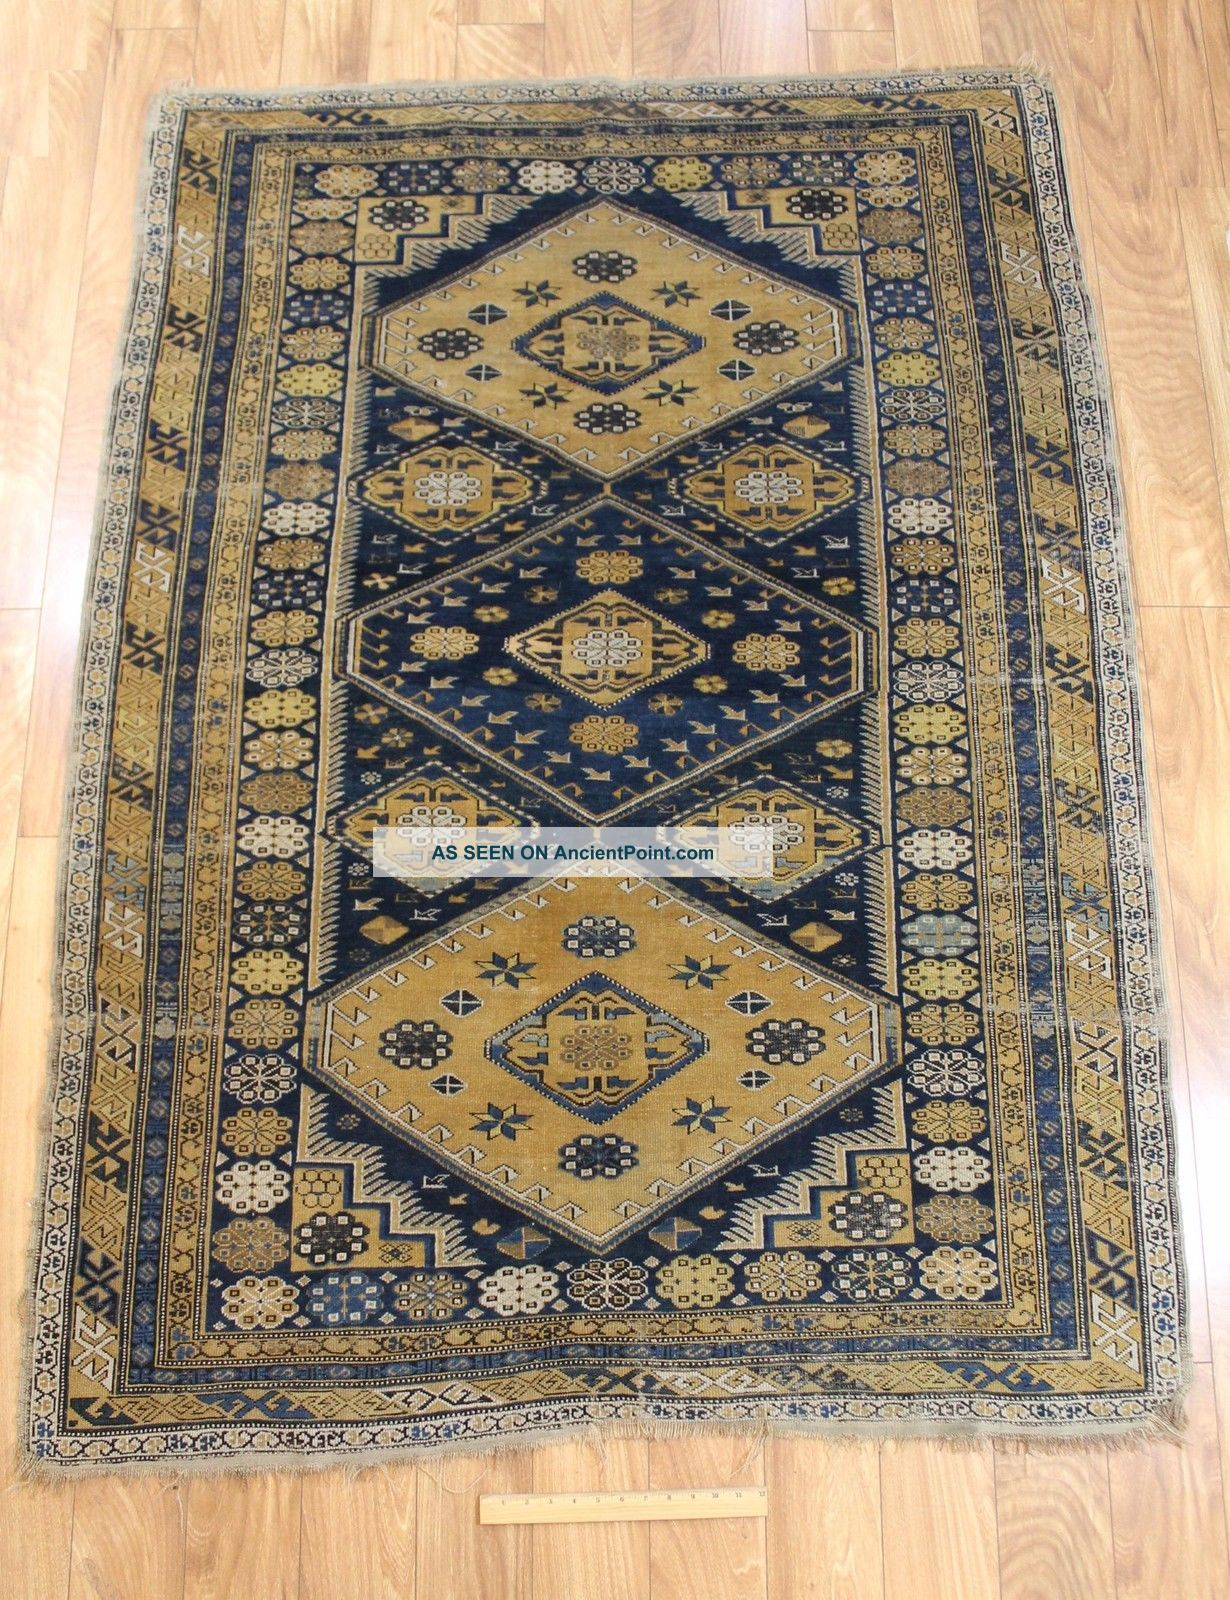 Antique Early 20thc Hand Woven Wool Shirvan Rug/carpet,  No Reverse Rugs & Carpets photo